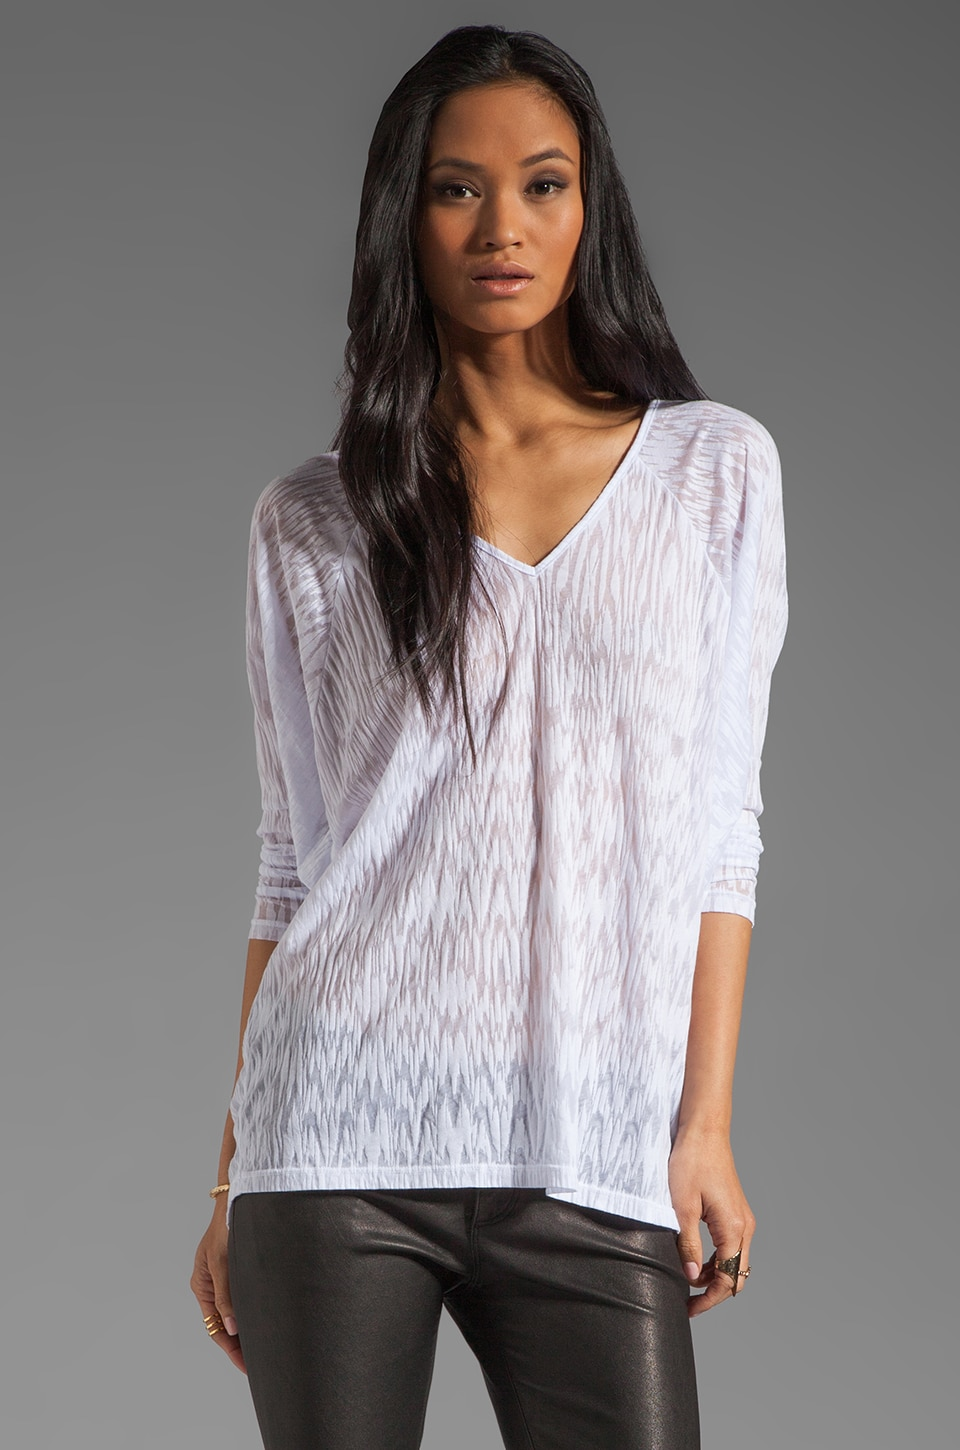 Velvet by Graham & Spencer Ikat Burnout Georgina Long Sleeve Top in White